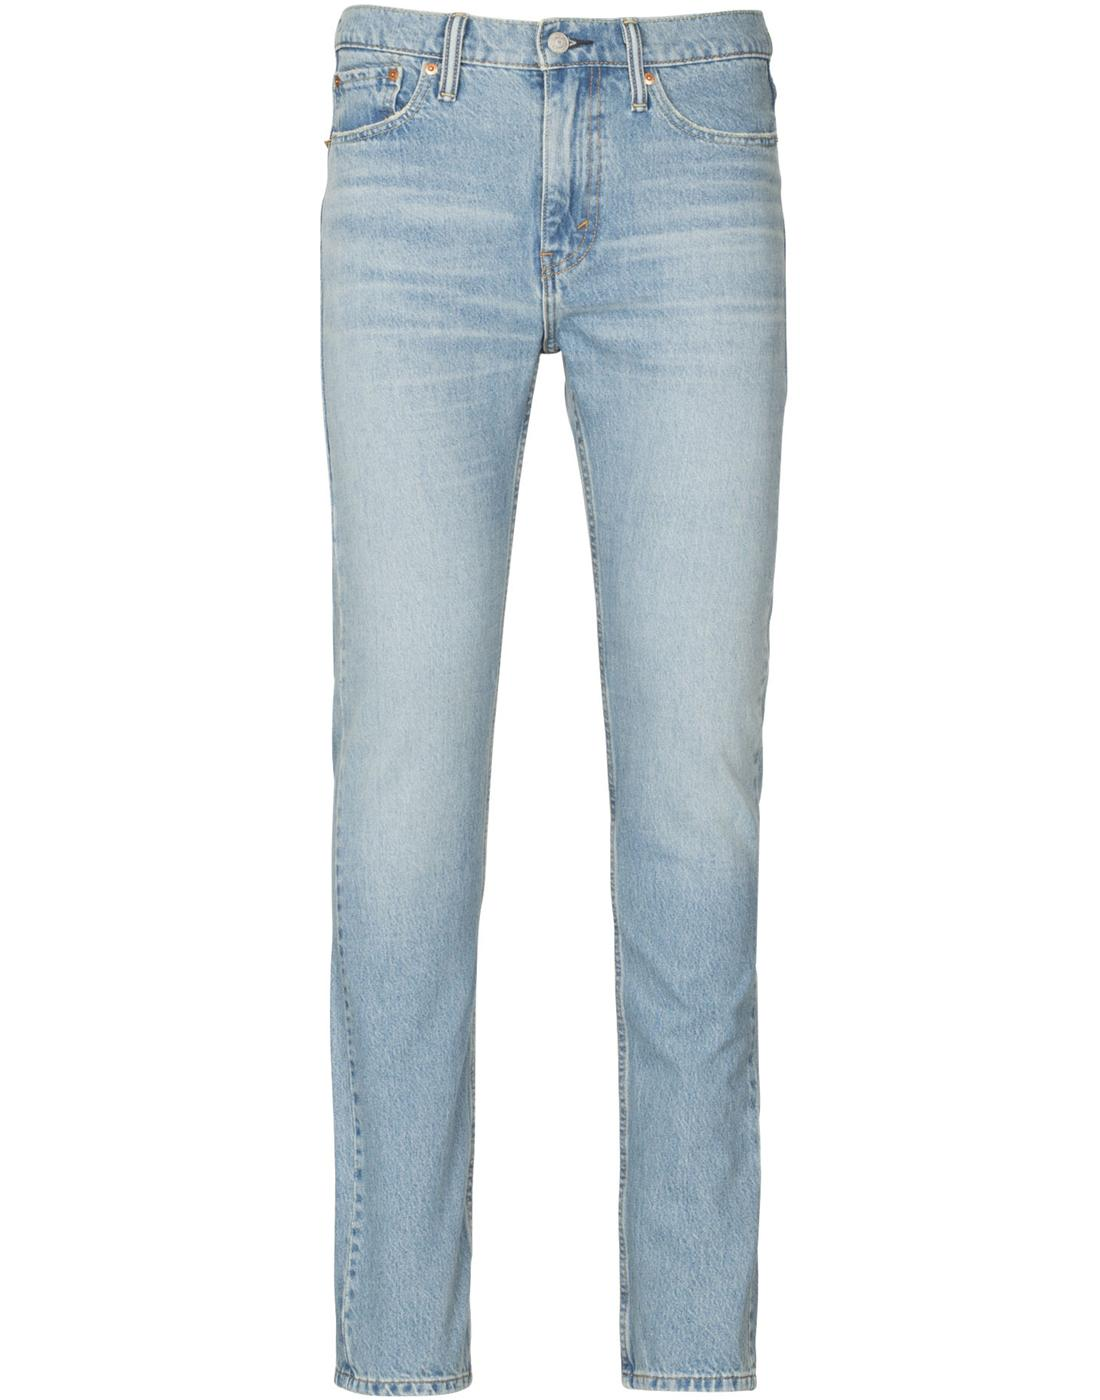 0f17653a LEVI'S 510 Retro Indie Mod Skinny Fit Jeans in Gingham Warp